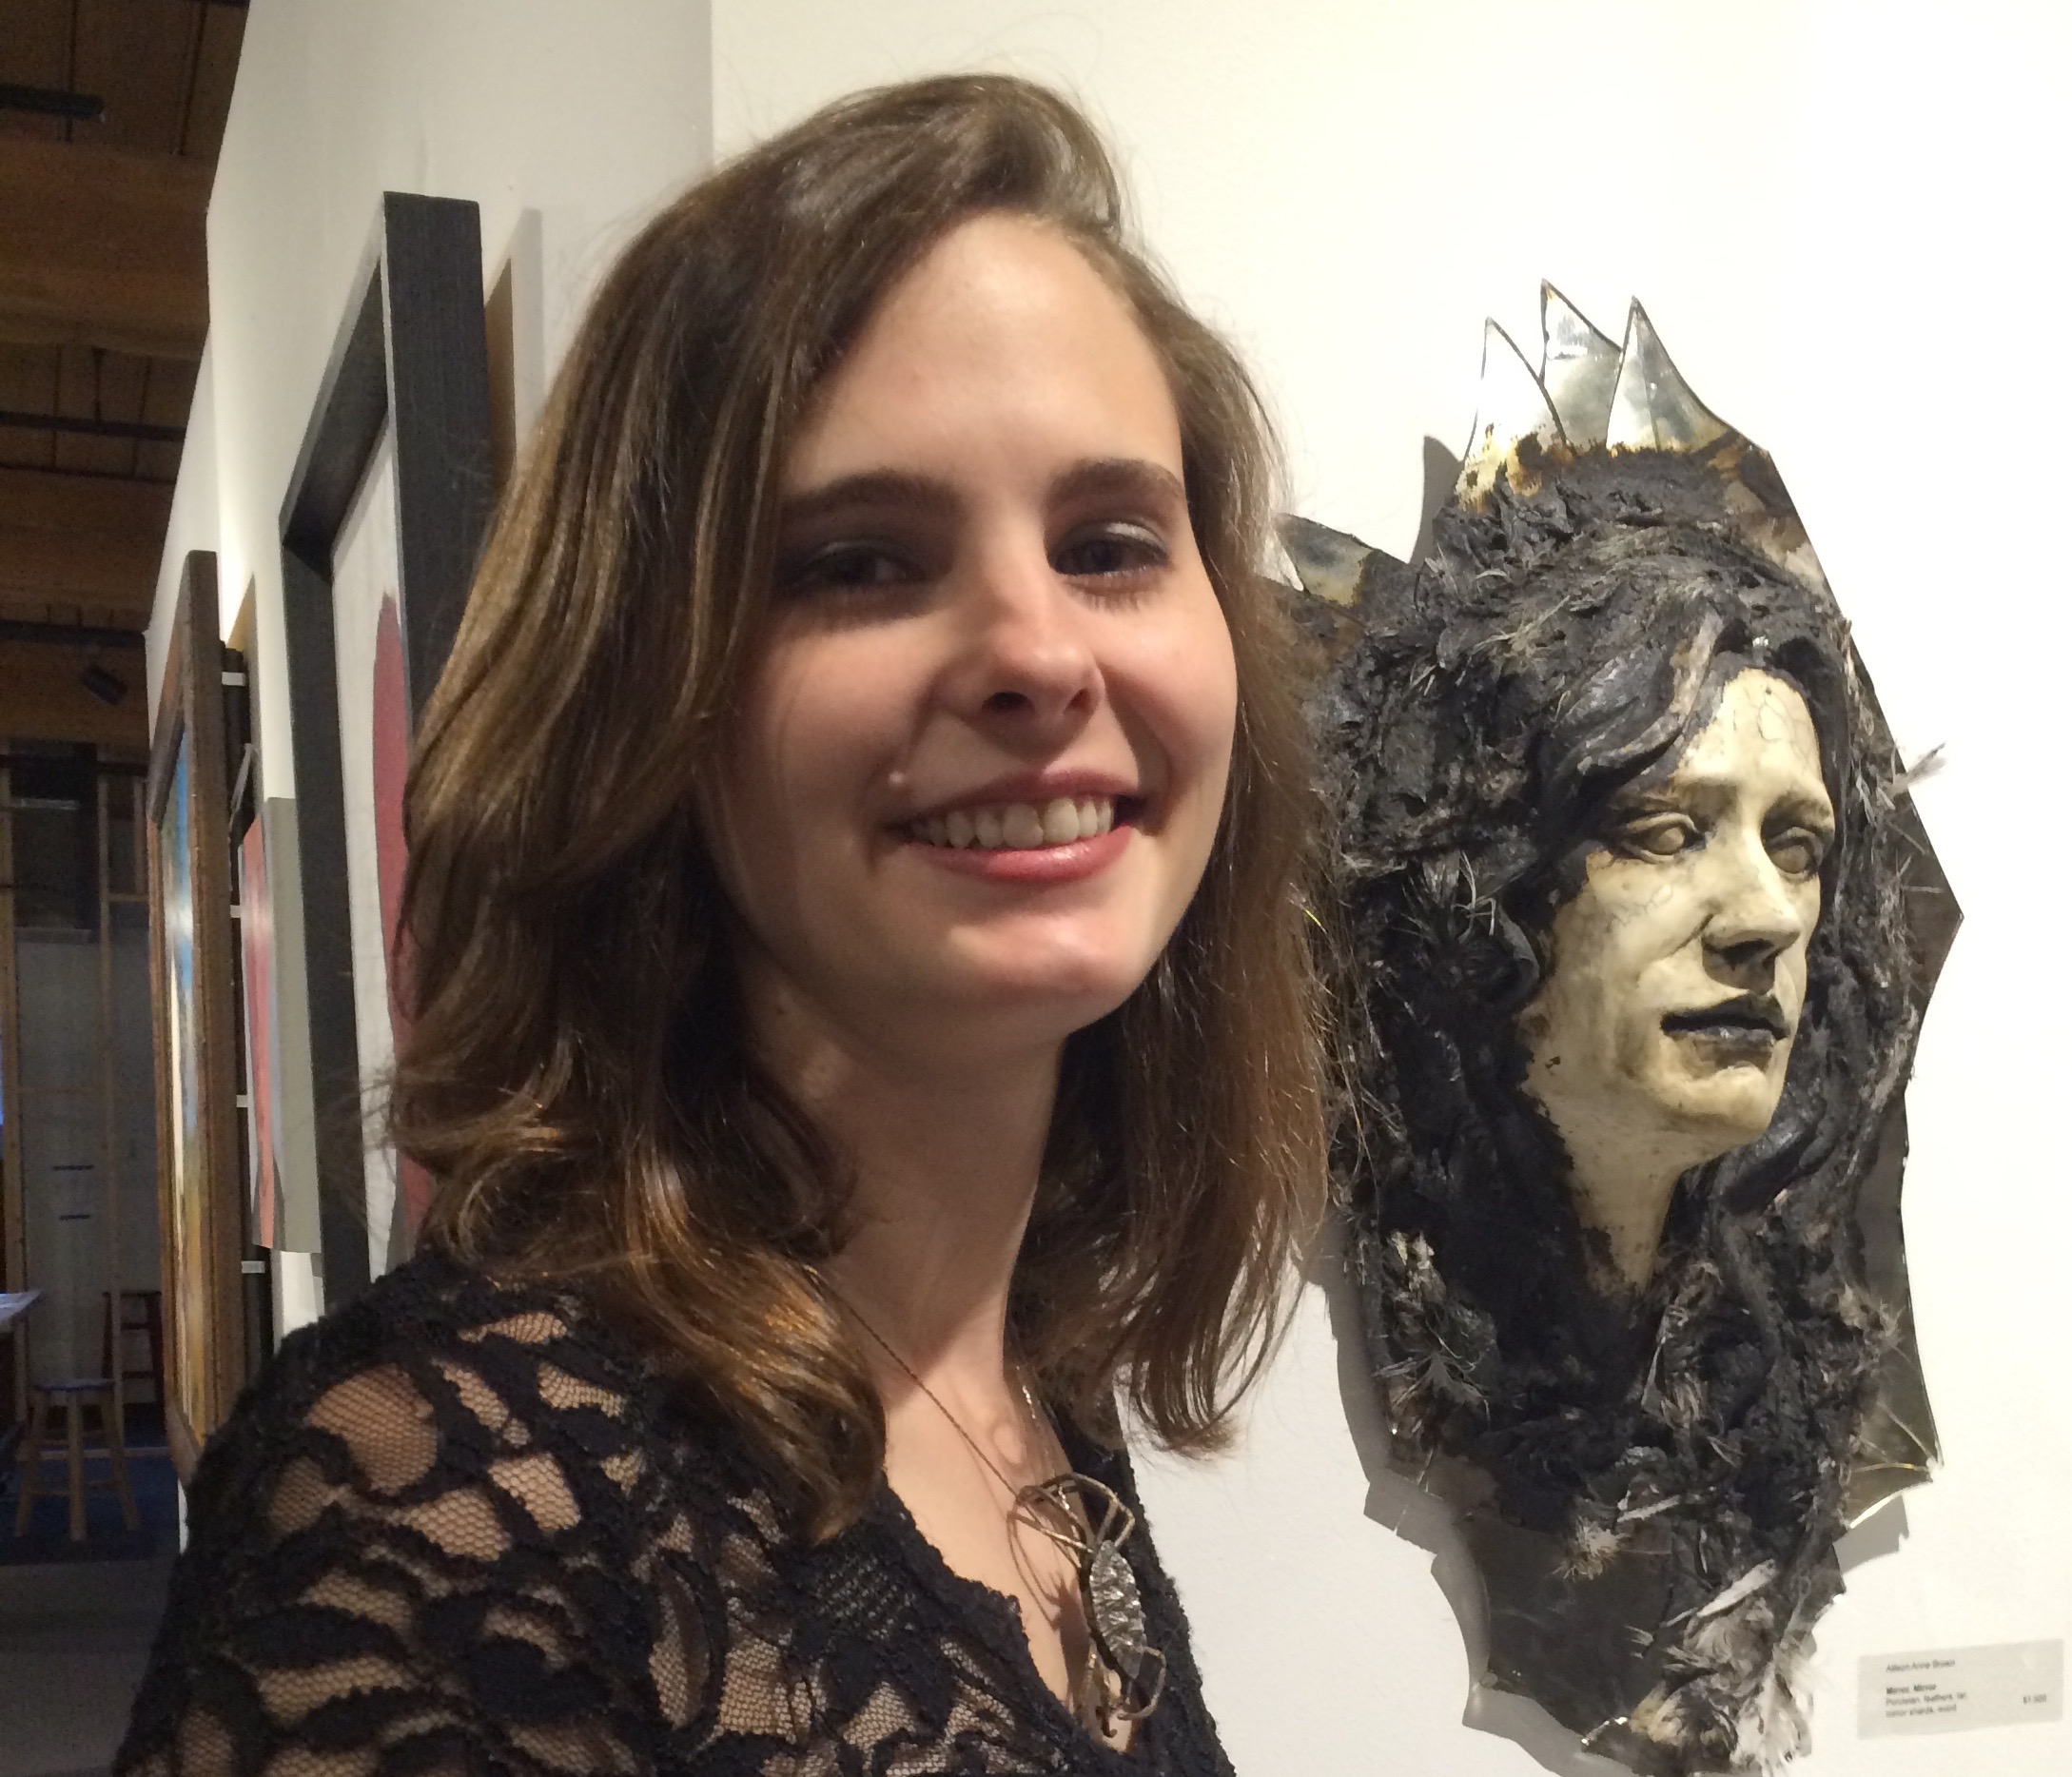 Congratulations on having work in MAKING FACES Allison Brown!